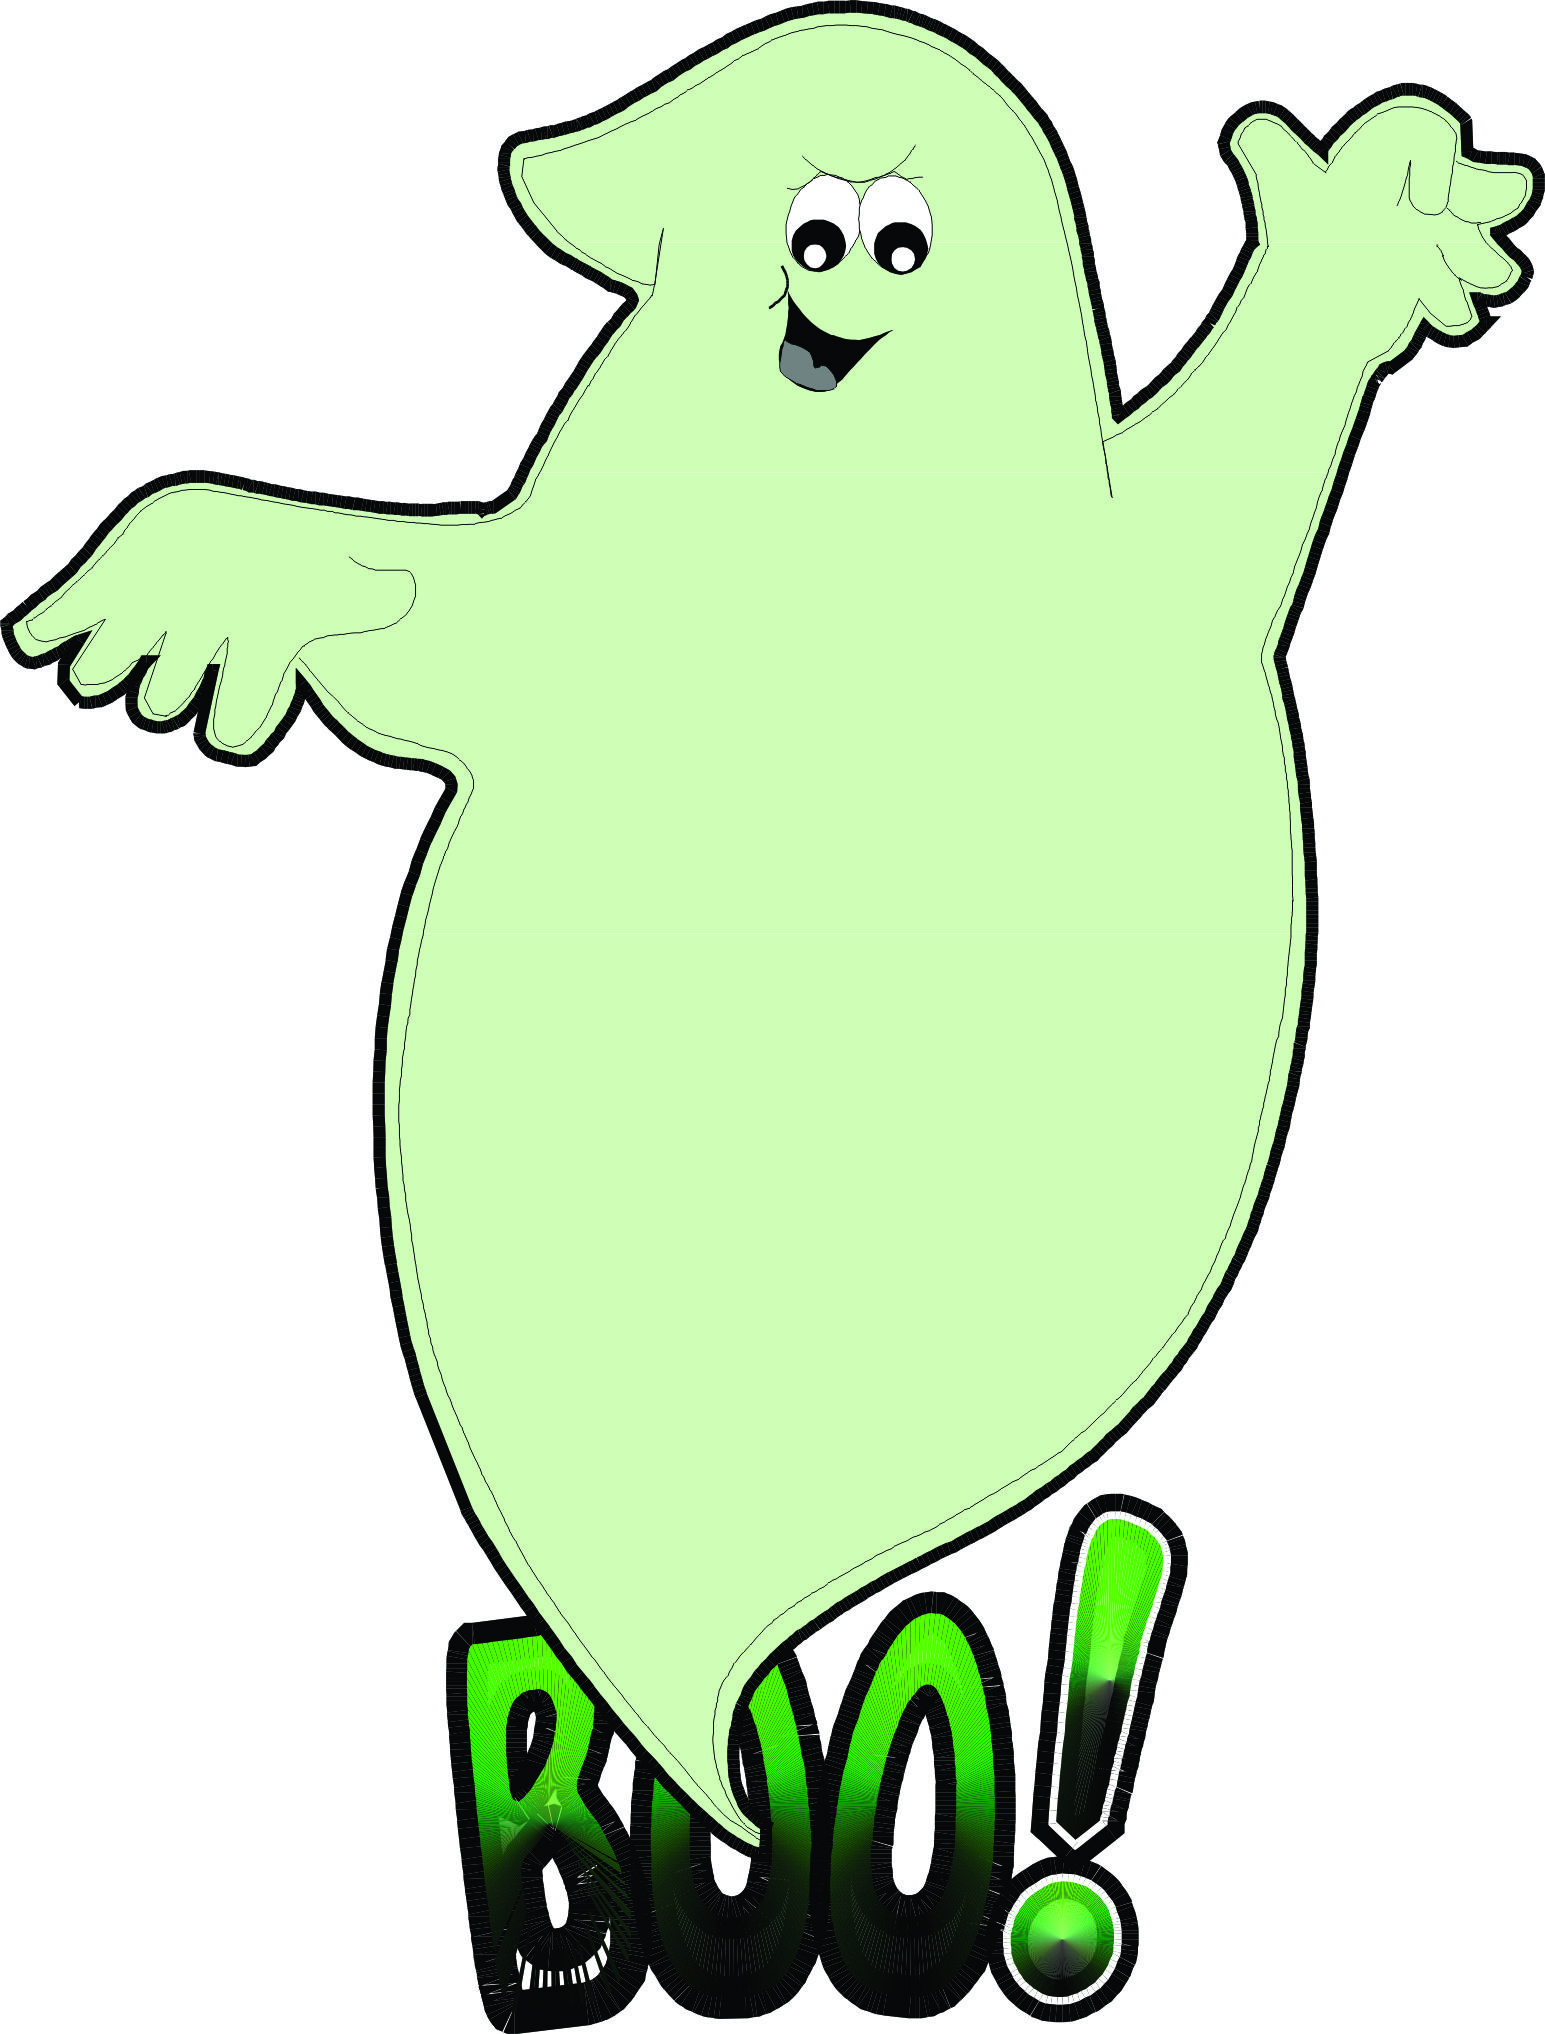 Ghost eating clipart clip royalty free download Ghost Eating Cliparts 24 - 1545 X 2034 - Making-The-Web.com clip royalty free download